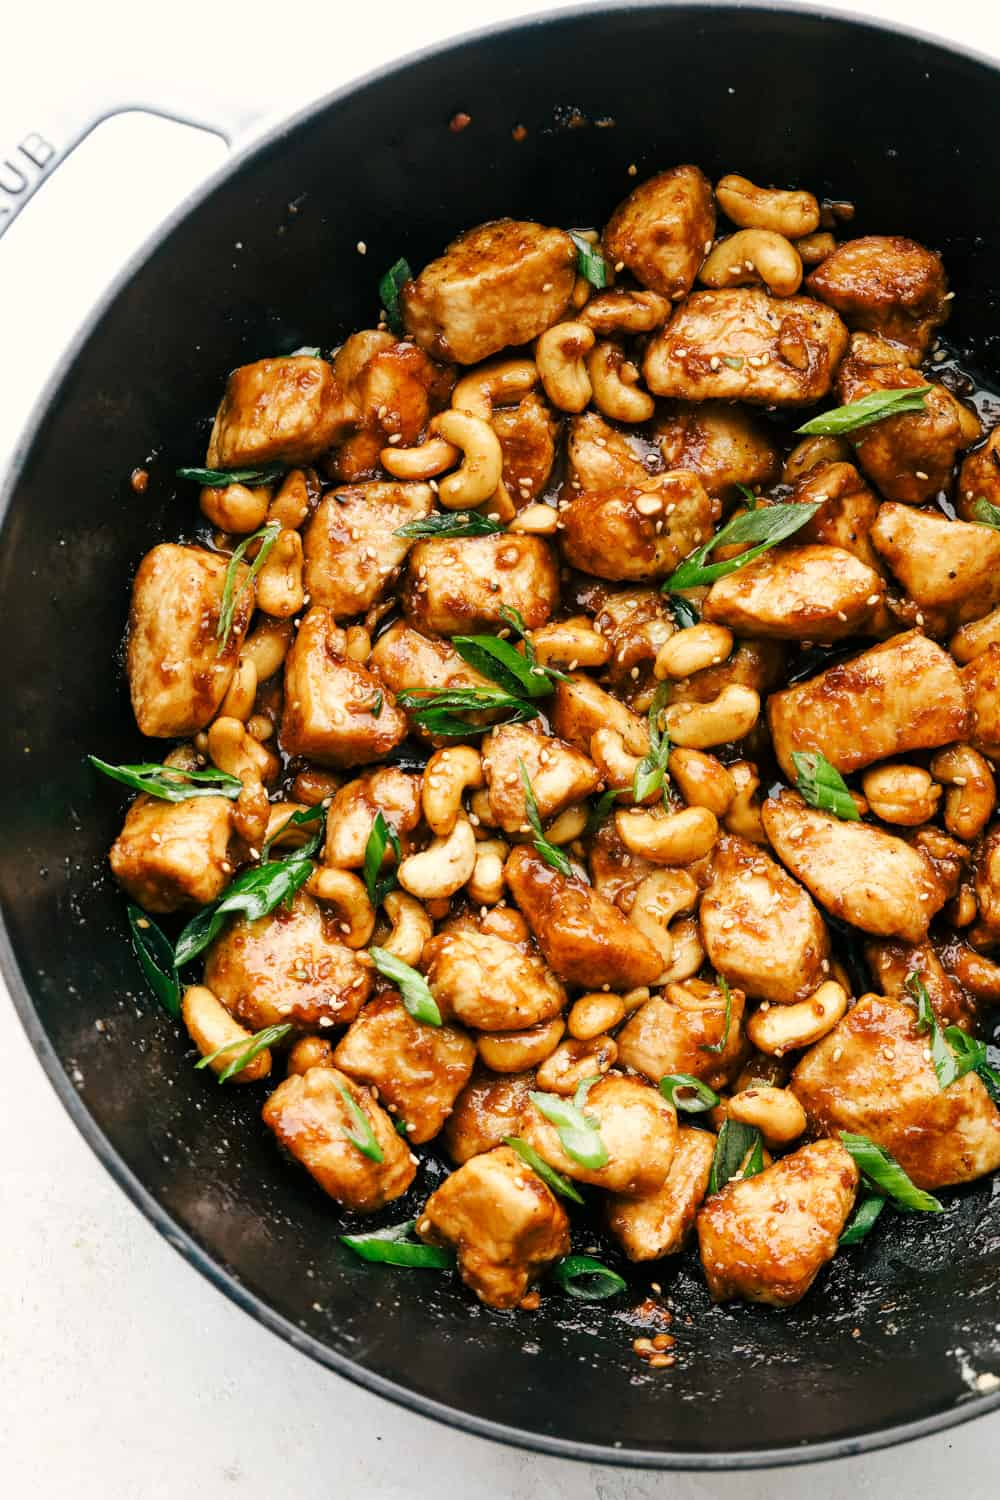 Cashew chicken in a wok with garnish.